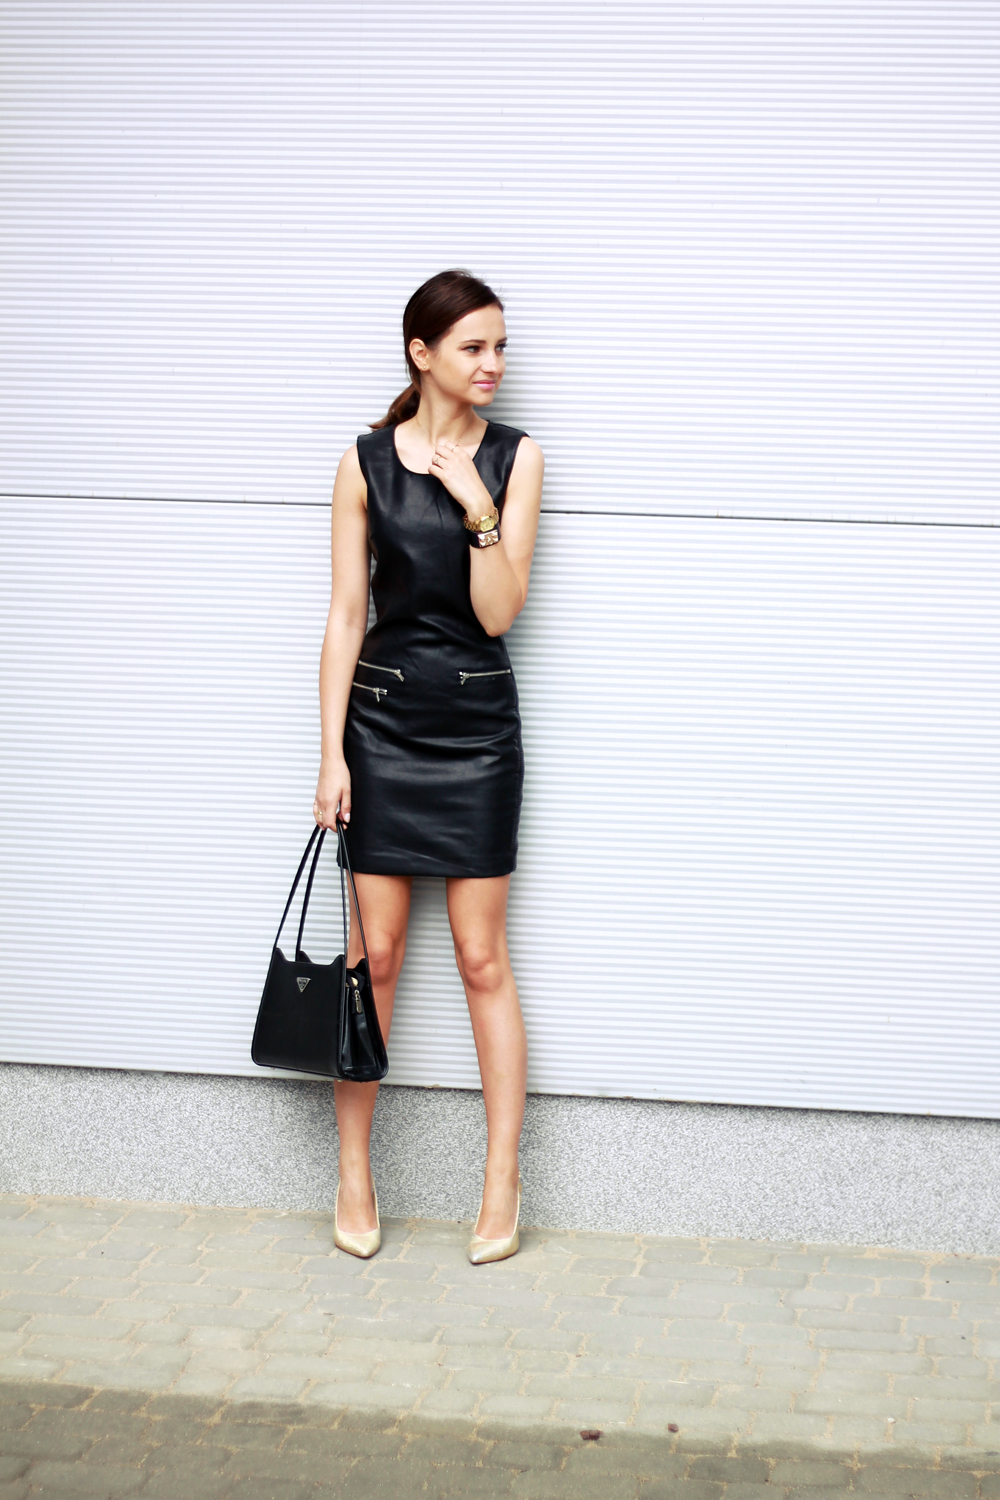 fashion blog street style chic vogue tumblr girl black dress lilicons 3